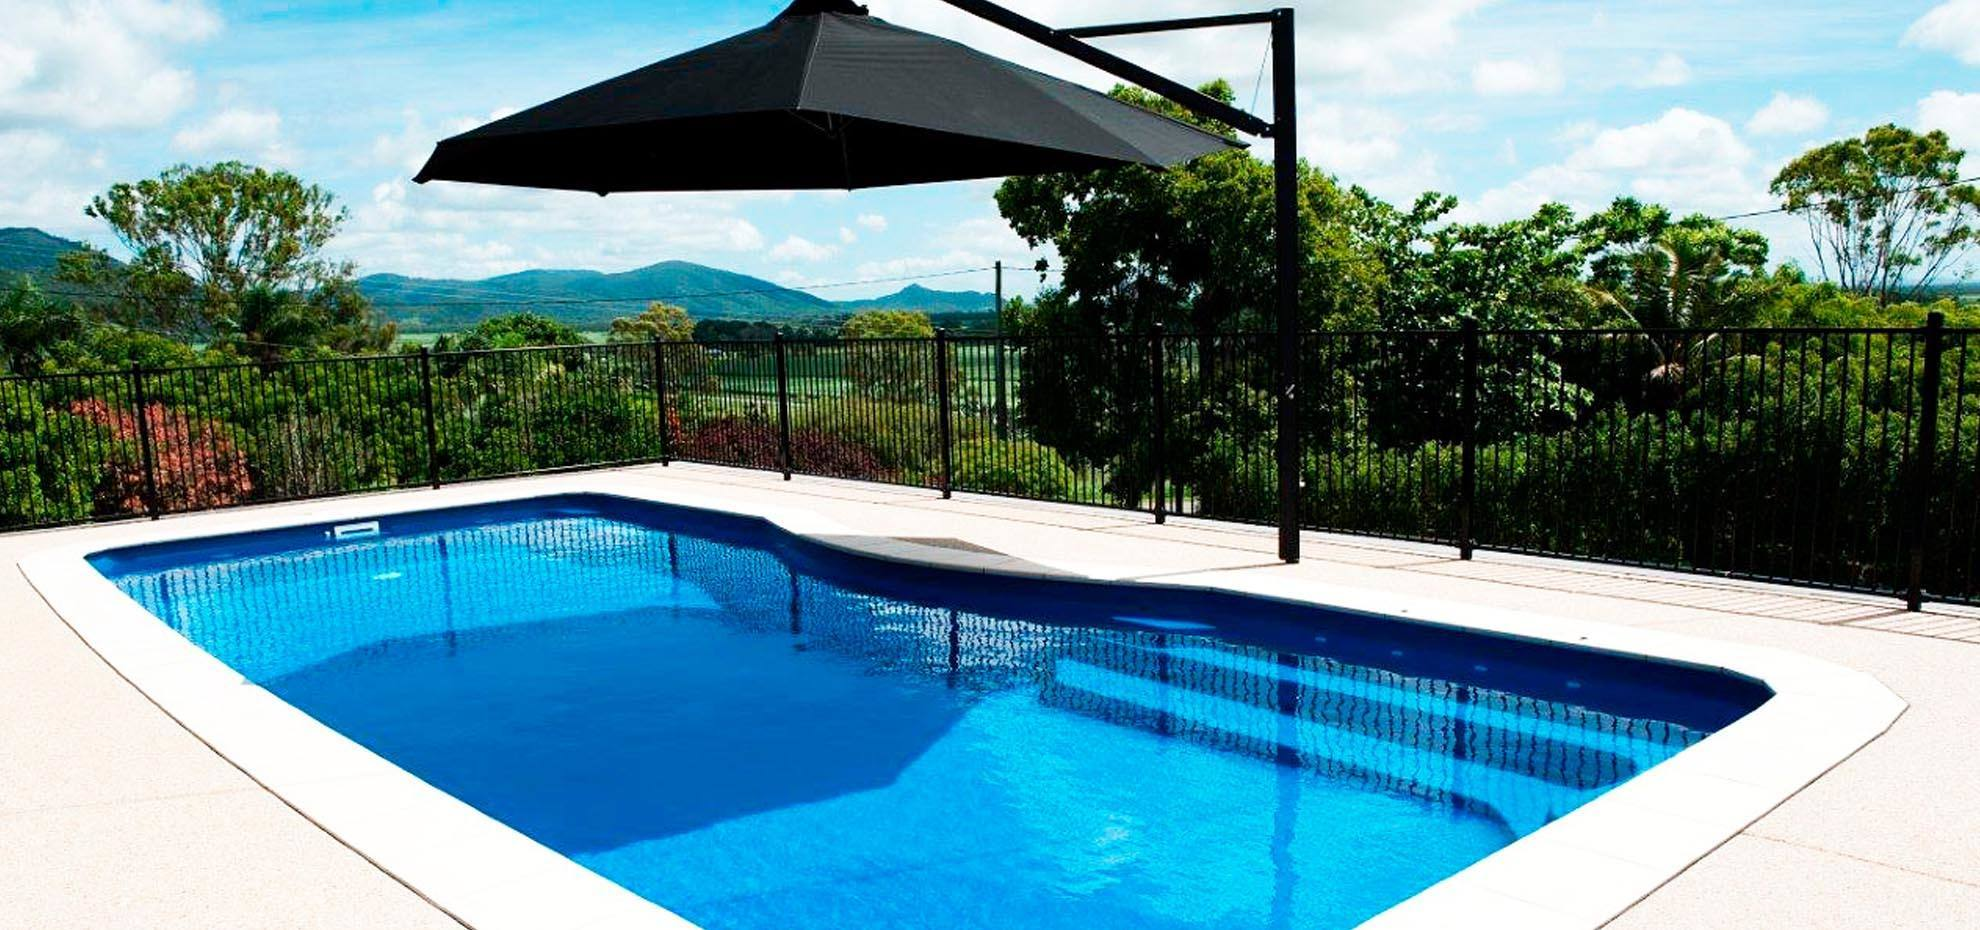 Moroccan fibreglass pool design with coping and shade umbrella by Leisure Pools